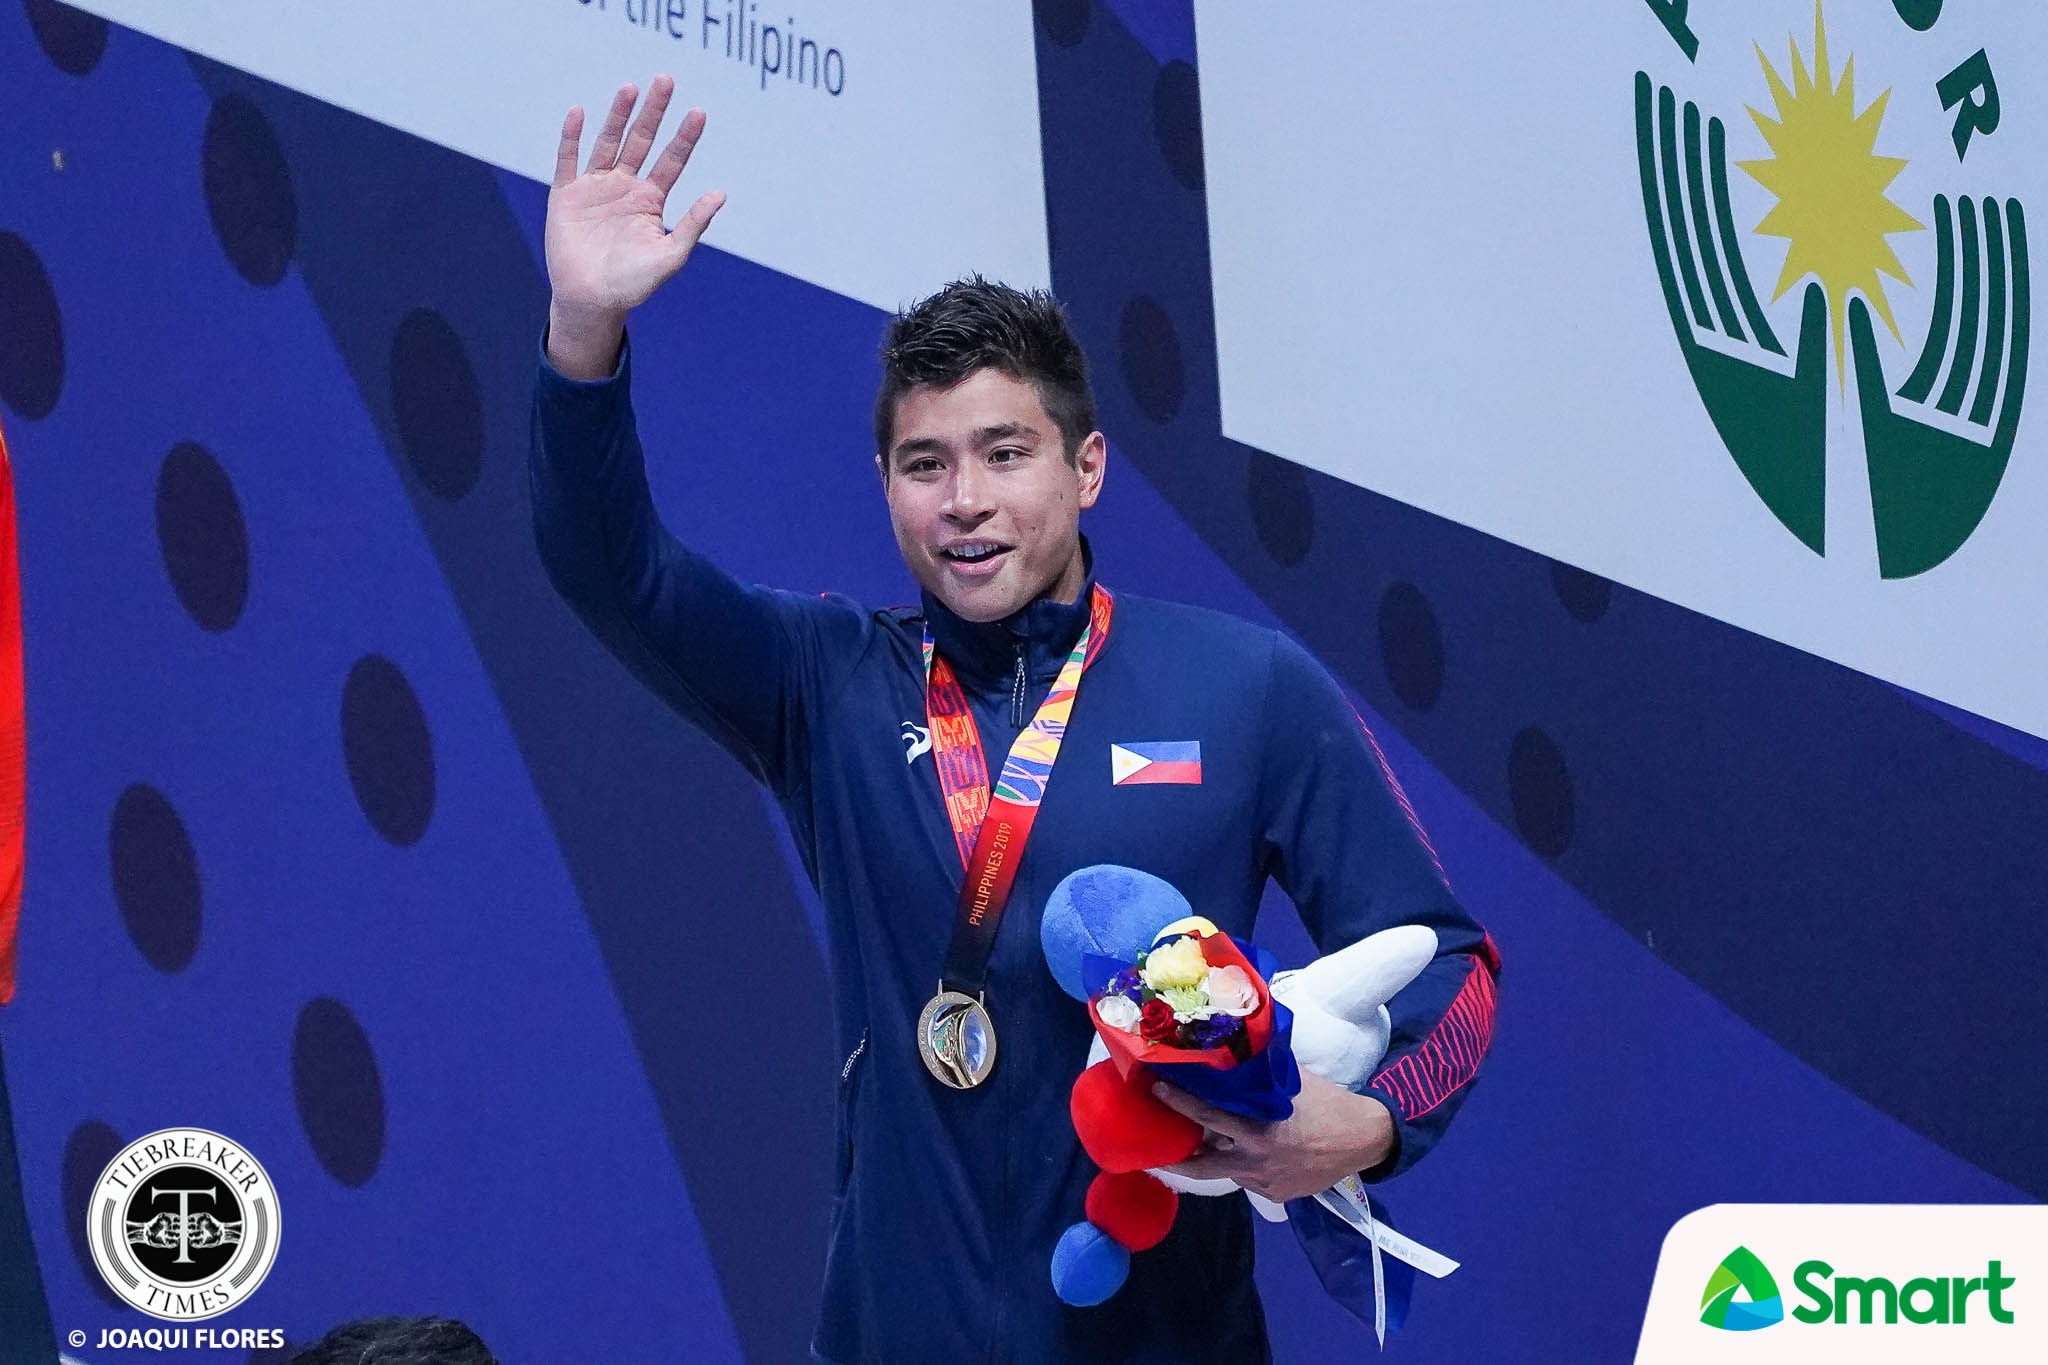 Tiebreaker Times Wild crowd willed James Deiparine to end PH's SEAG swimming drought 2019 SEA Games News Swimming  James Deiparine 2019 SEA Games - Swimming 2019 SEA Games